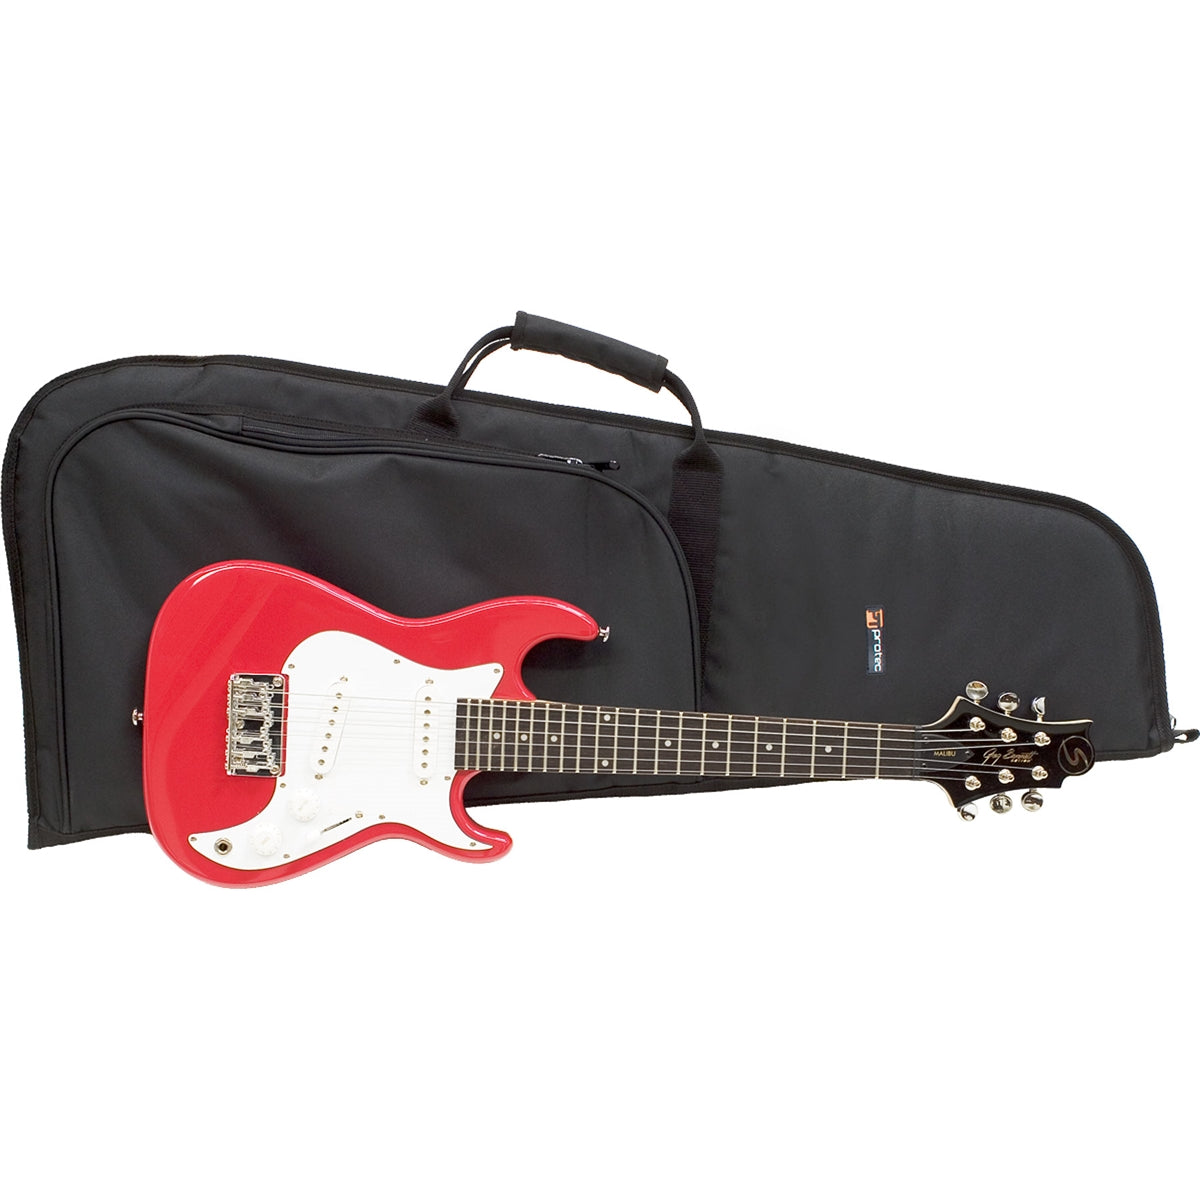 PROTEC Half Electric/Bass Gig Bag - Silver Series